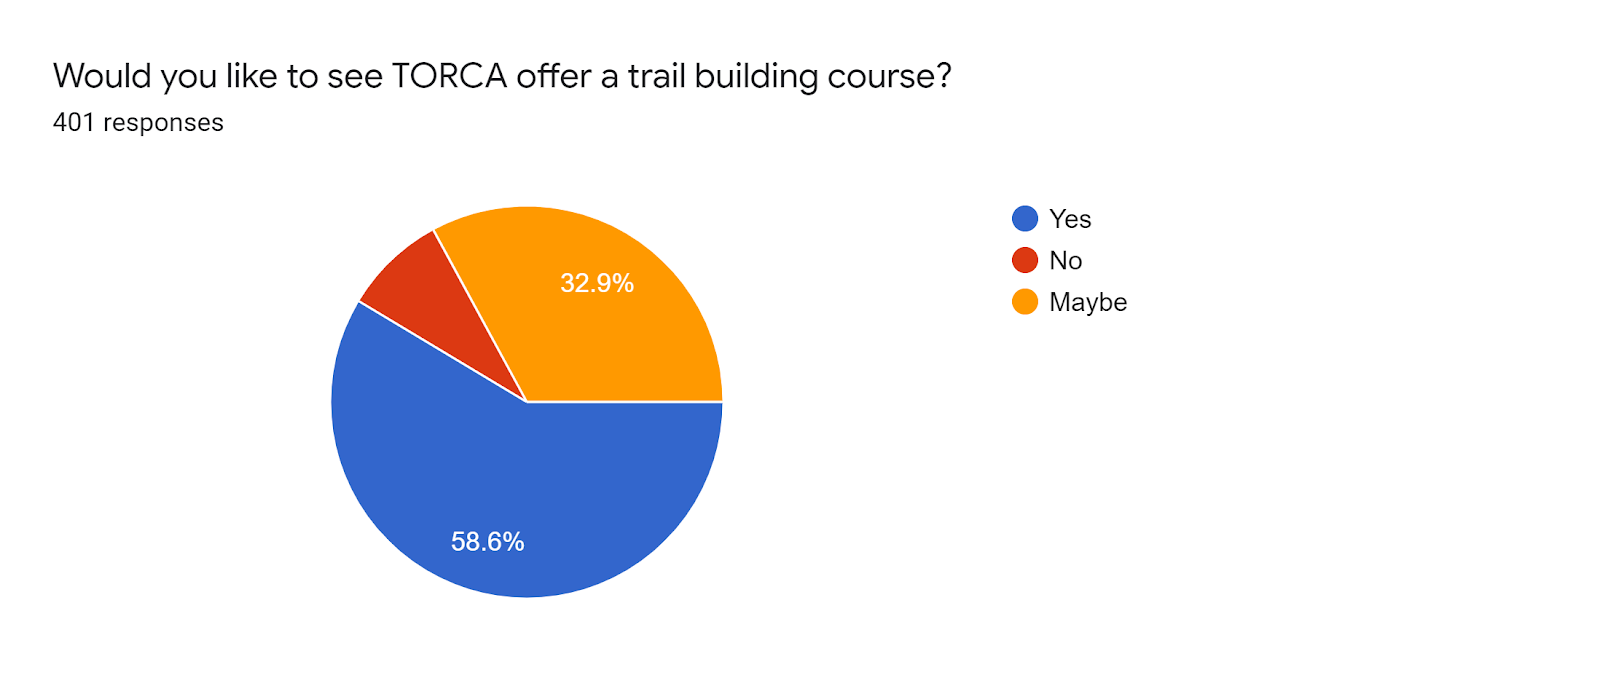 Forms response chart. Question title: Would you like to see TORCA offer a trail building course?. Number of responses: 401 responses.